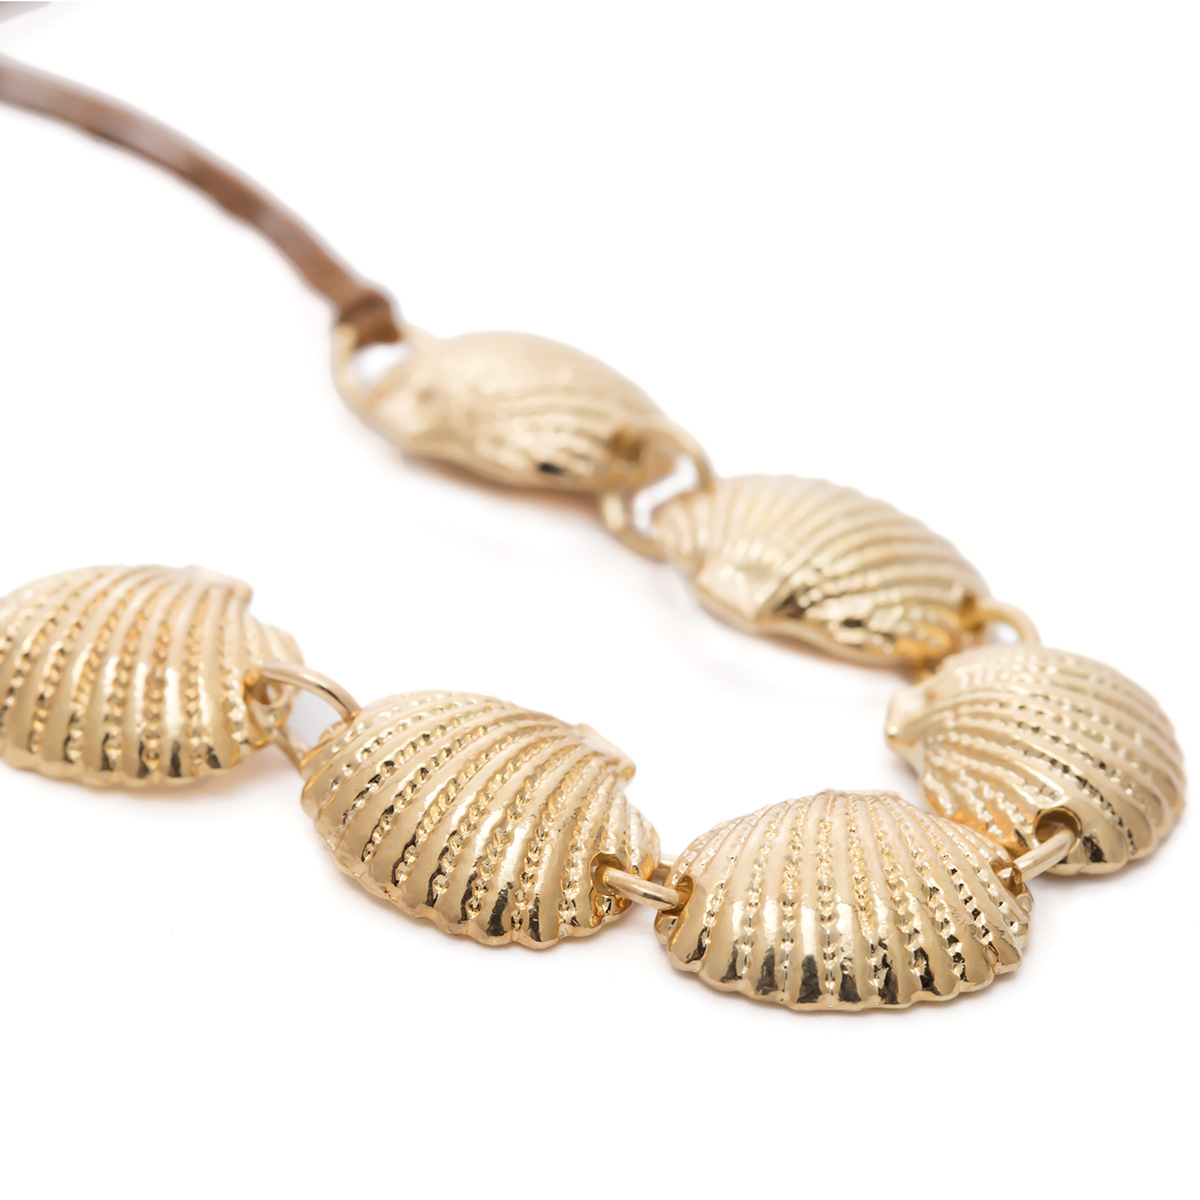 Creative fan-shaped shell adjustable necklace NHXR141875